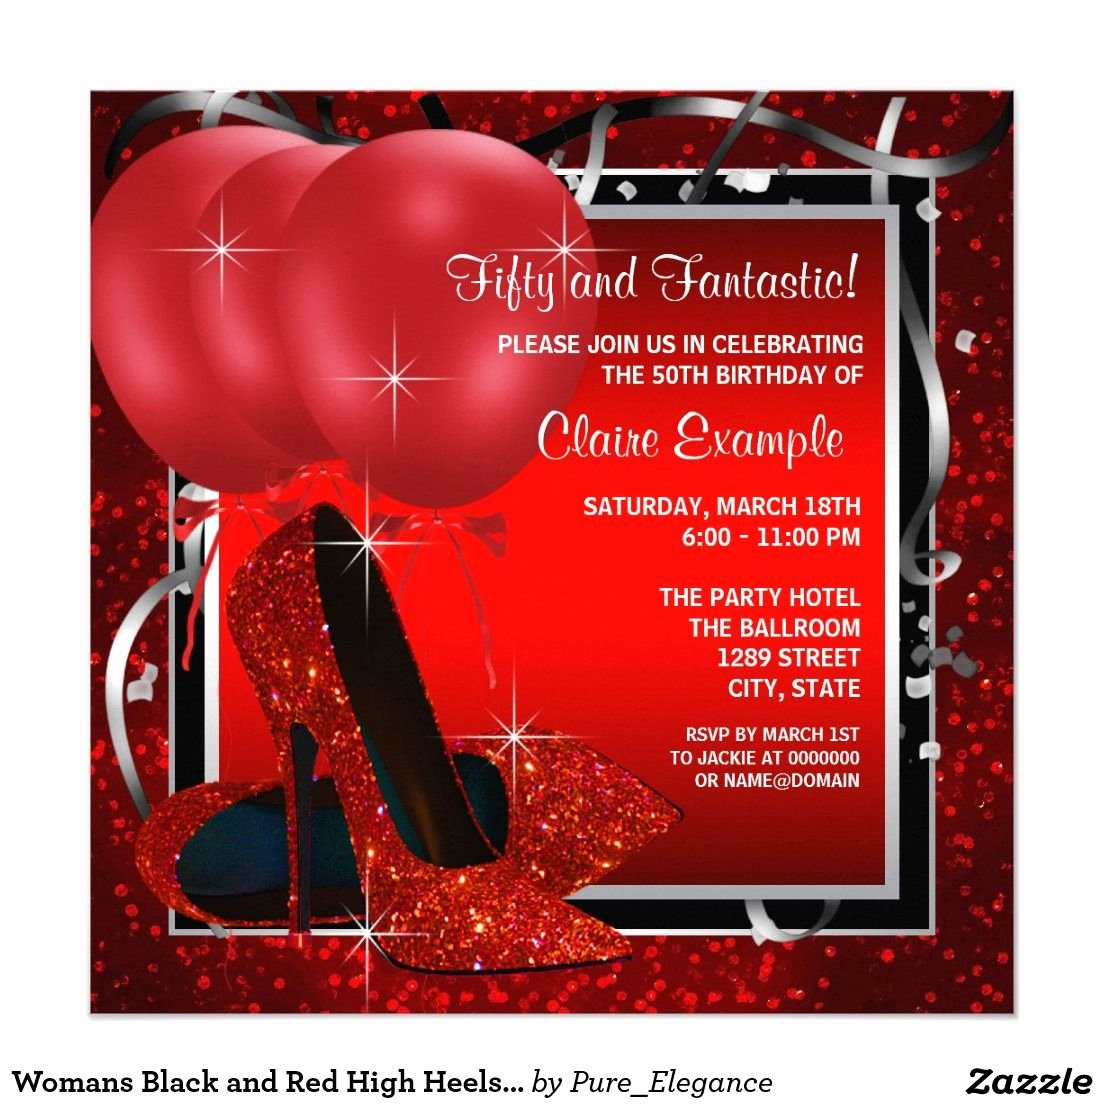 Birthday Invitations for Women Luxury Womans Black and Red High Heels Birthday Party Invitation Zazzle Party Ideas